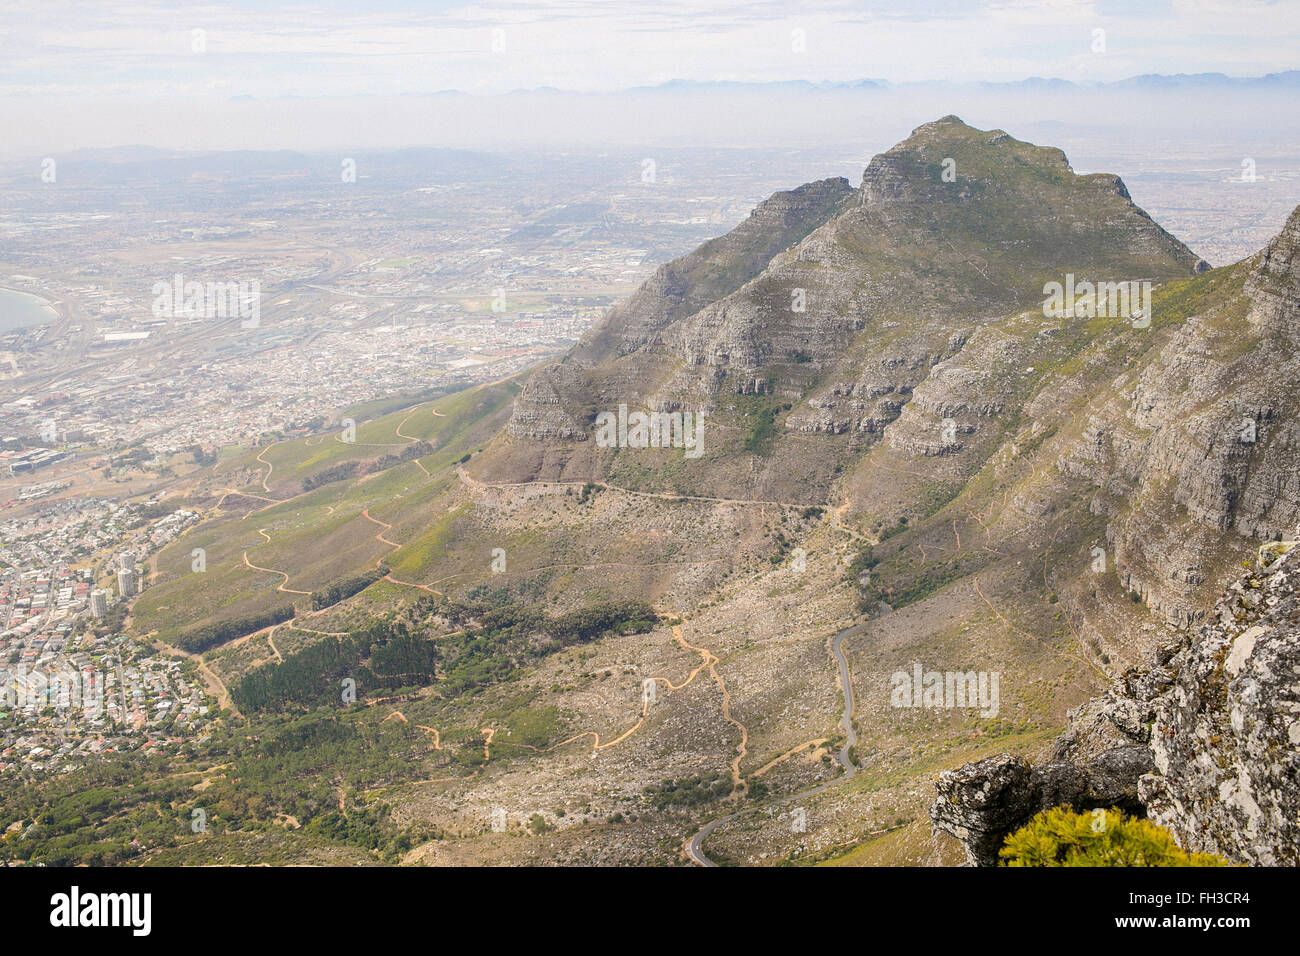 Devil's Peak from summit of Table Mountain in Cape Town - Stock Image